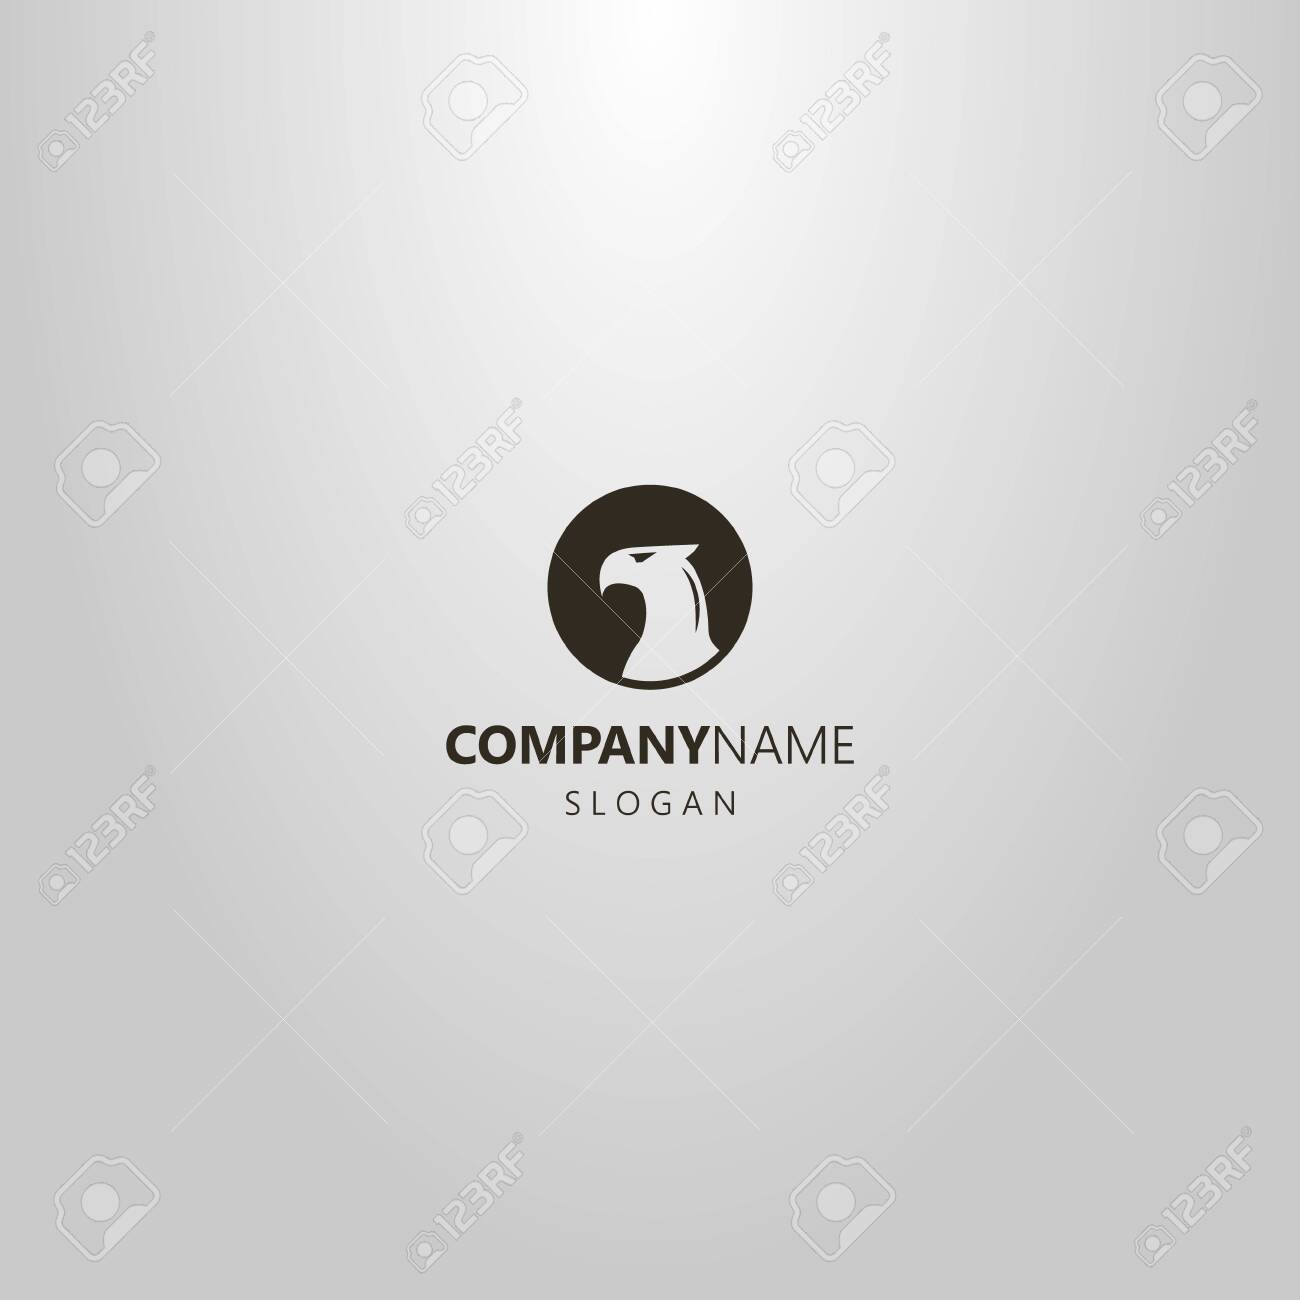 Black And White Simple Vector Negative Space Round Logo Of Bird Royalty Free Cliparts Vectors And Stock Illustration Image 127638930